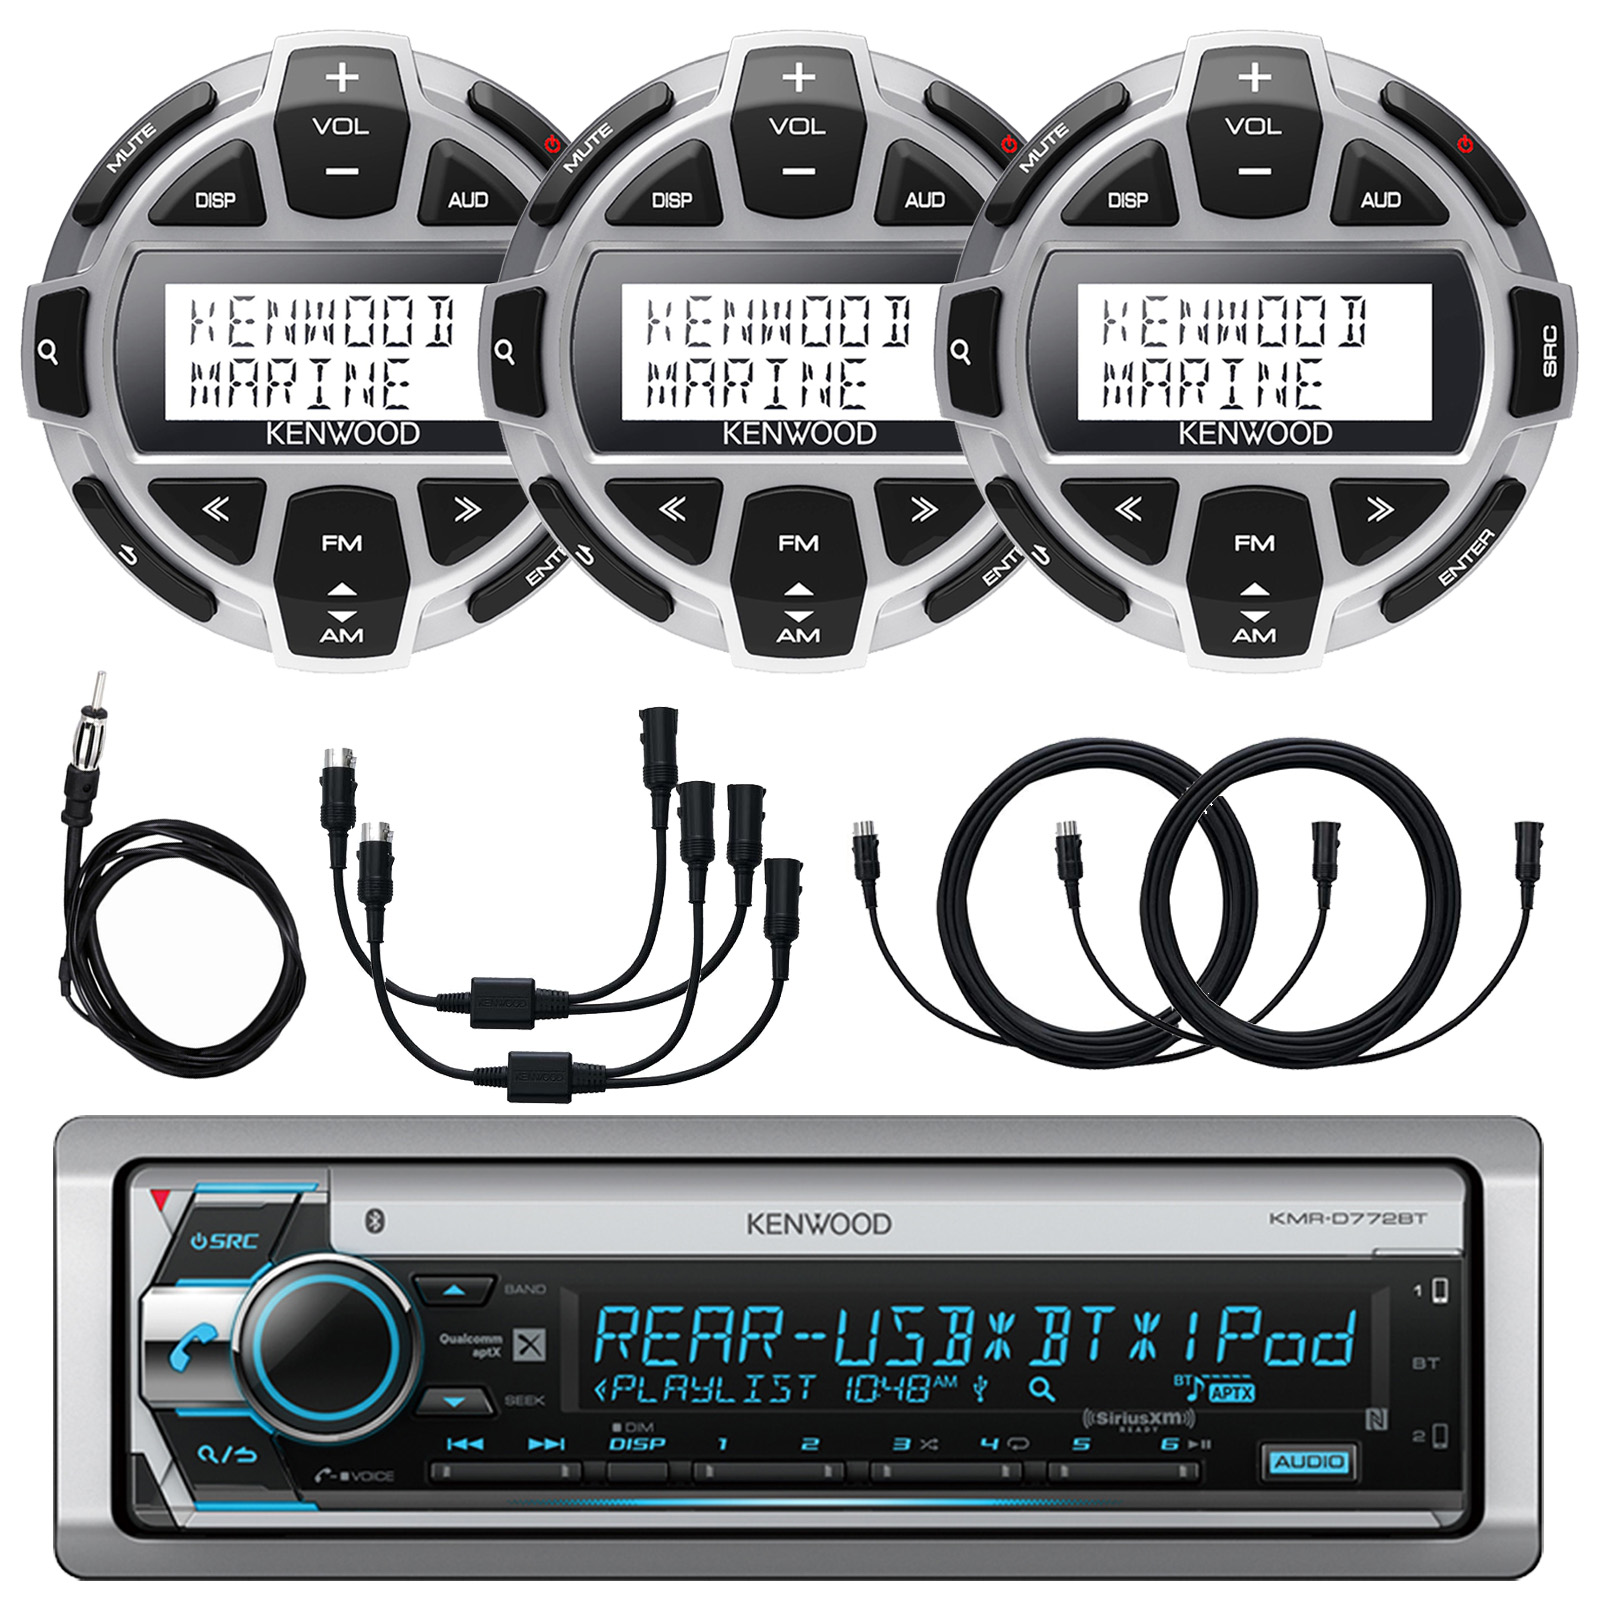 """Kenwood Single DIN Marine Boat Yacht USB CD Player Bluetooth Stereo Receiver, 3x Kenwood Digital LCD Display Wired Remote, 40"""" Enrock AM/FM Antenna, 2x Y-Cable Adapter, 3x 7-Meter 22 Ft Extension"""